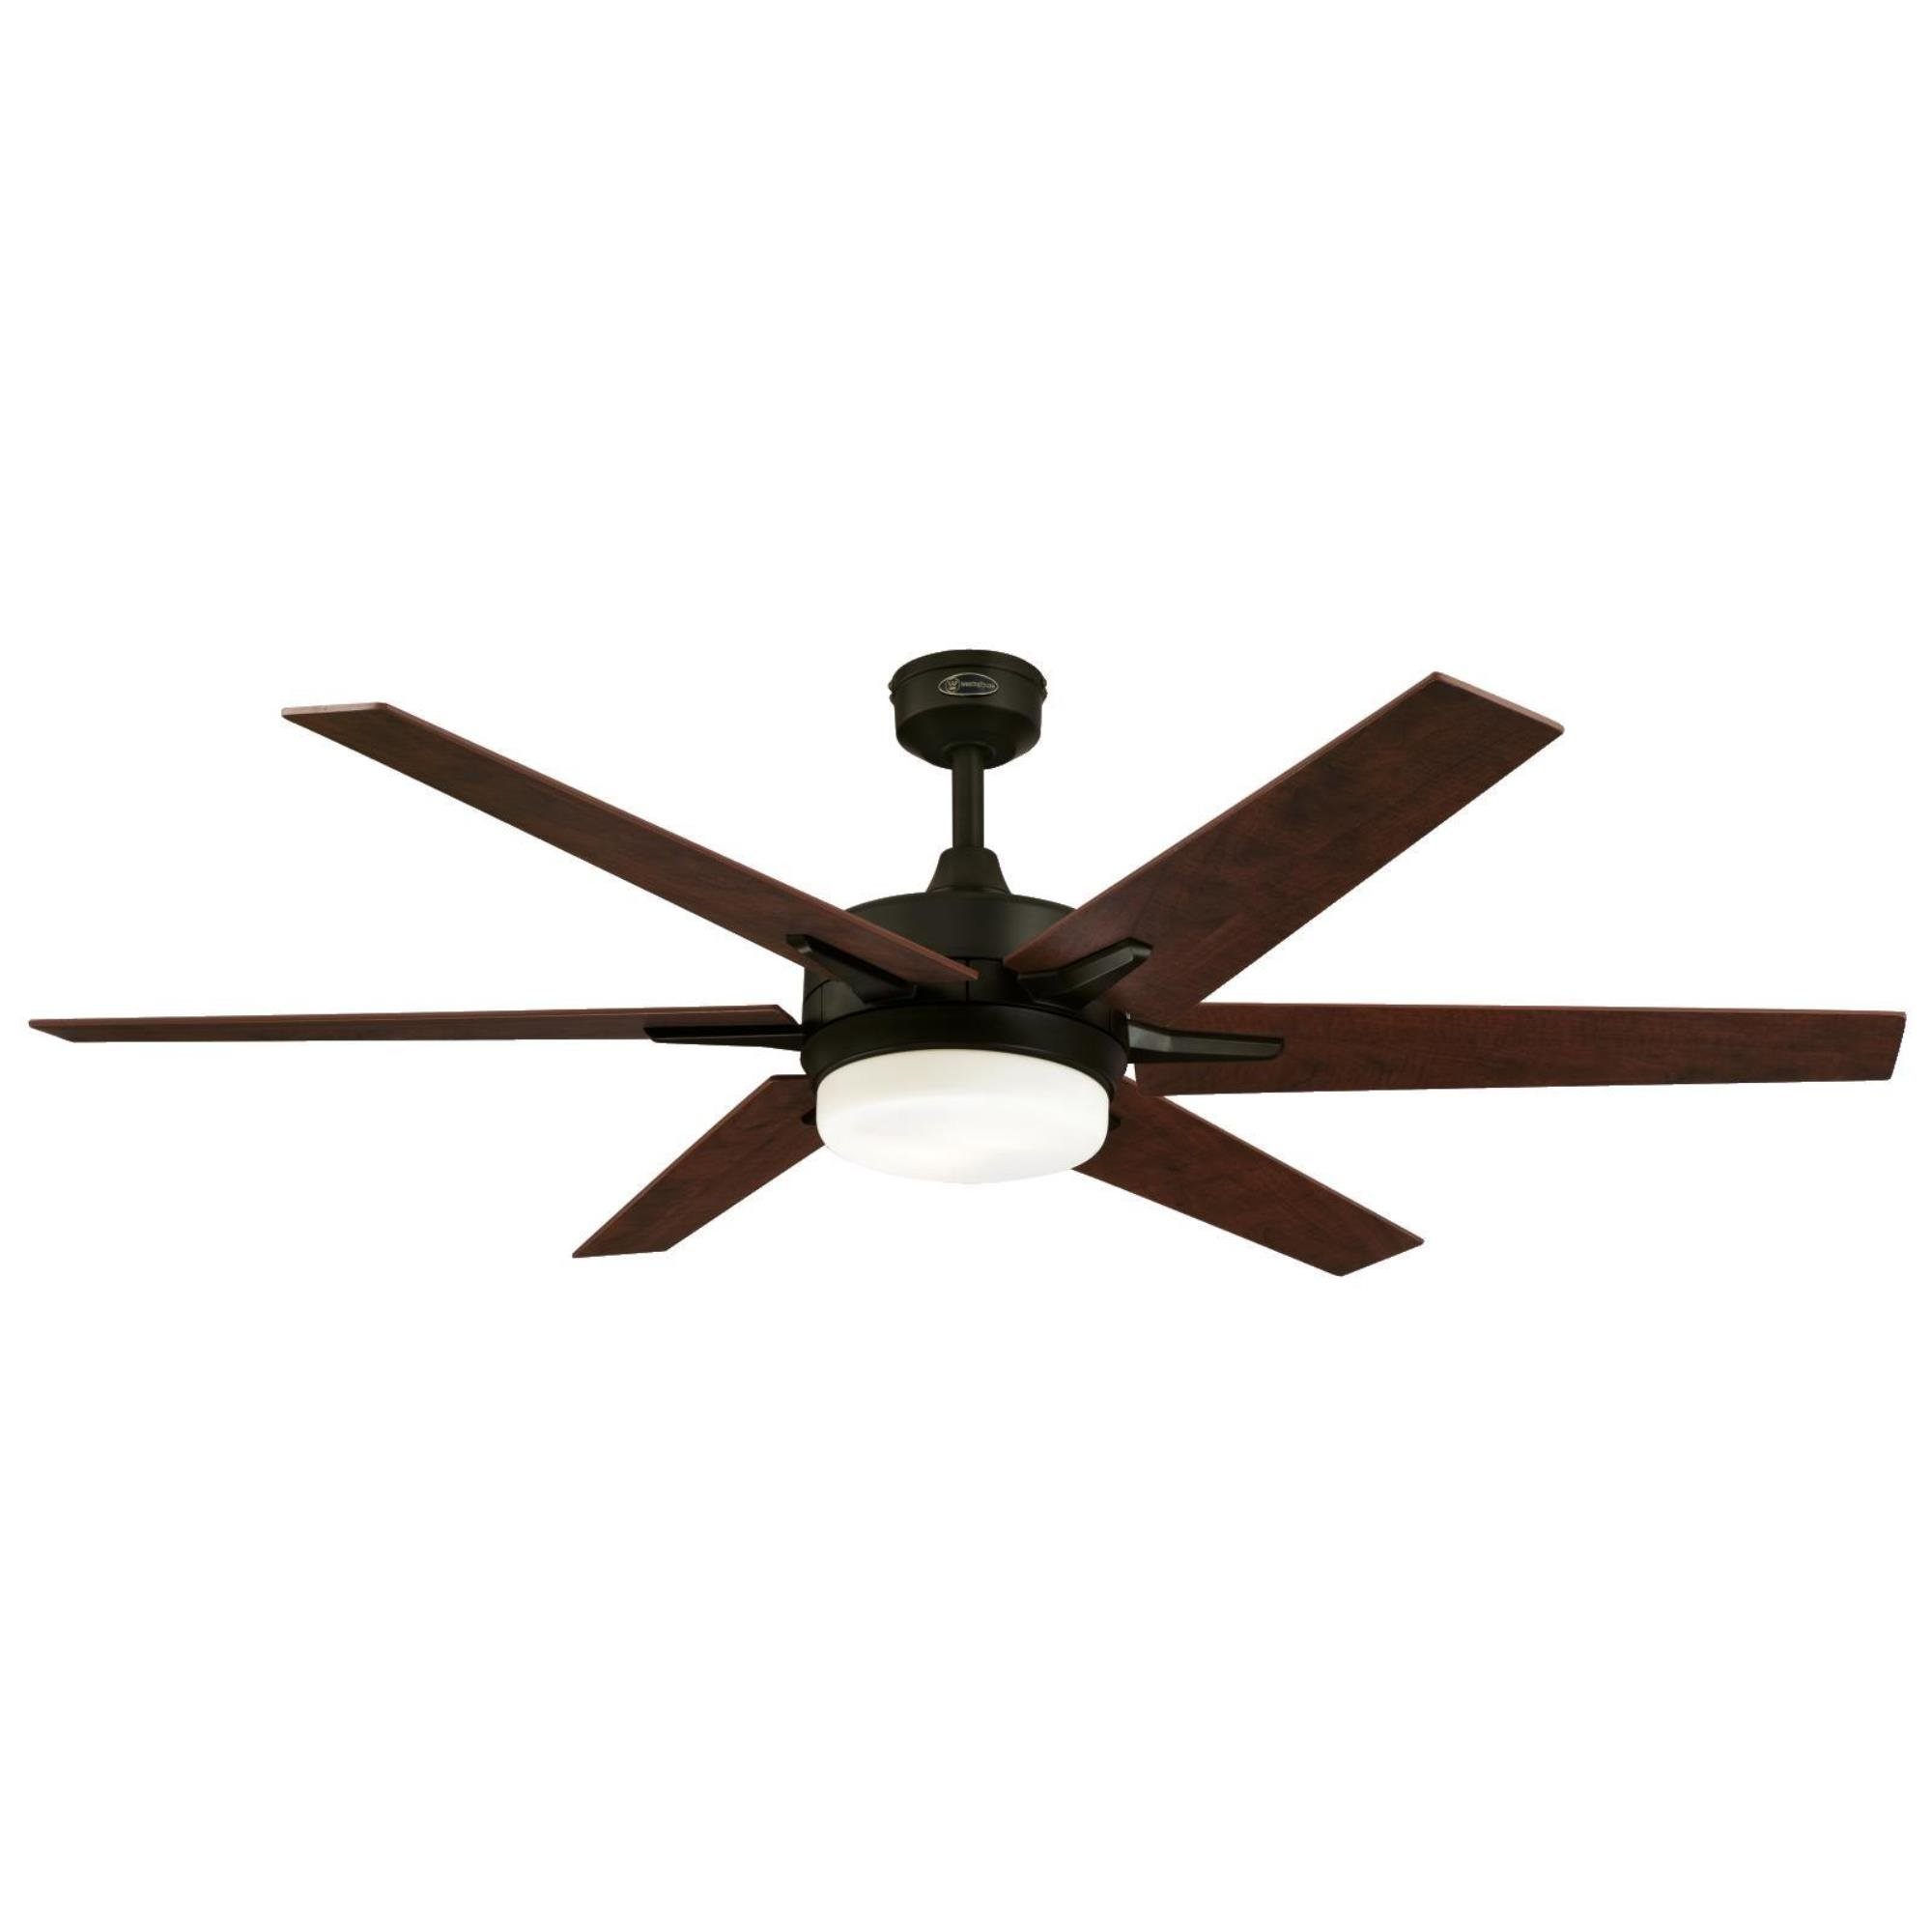 Westinghouse Lighting Remote Control Included 7207800 Cayuga 60-inch Oil Rubbed Bronze Indoor Ceiling Fan, Dimmable LED Light Kit with Opal Frosted Glass, by Westinghouse Lighting (Image #1)